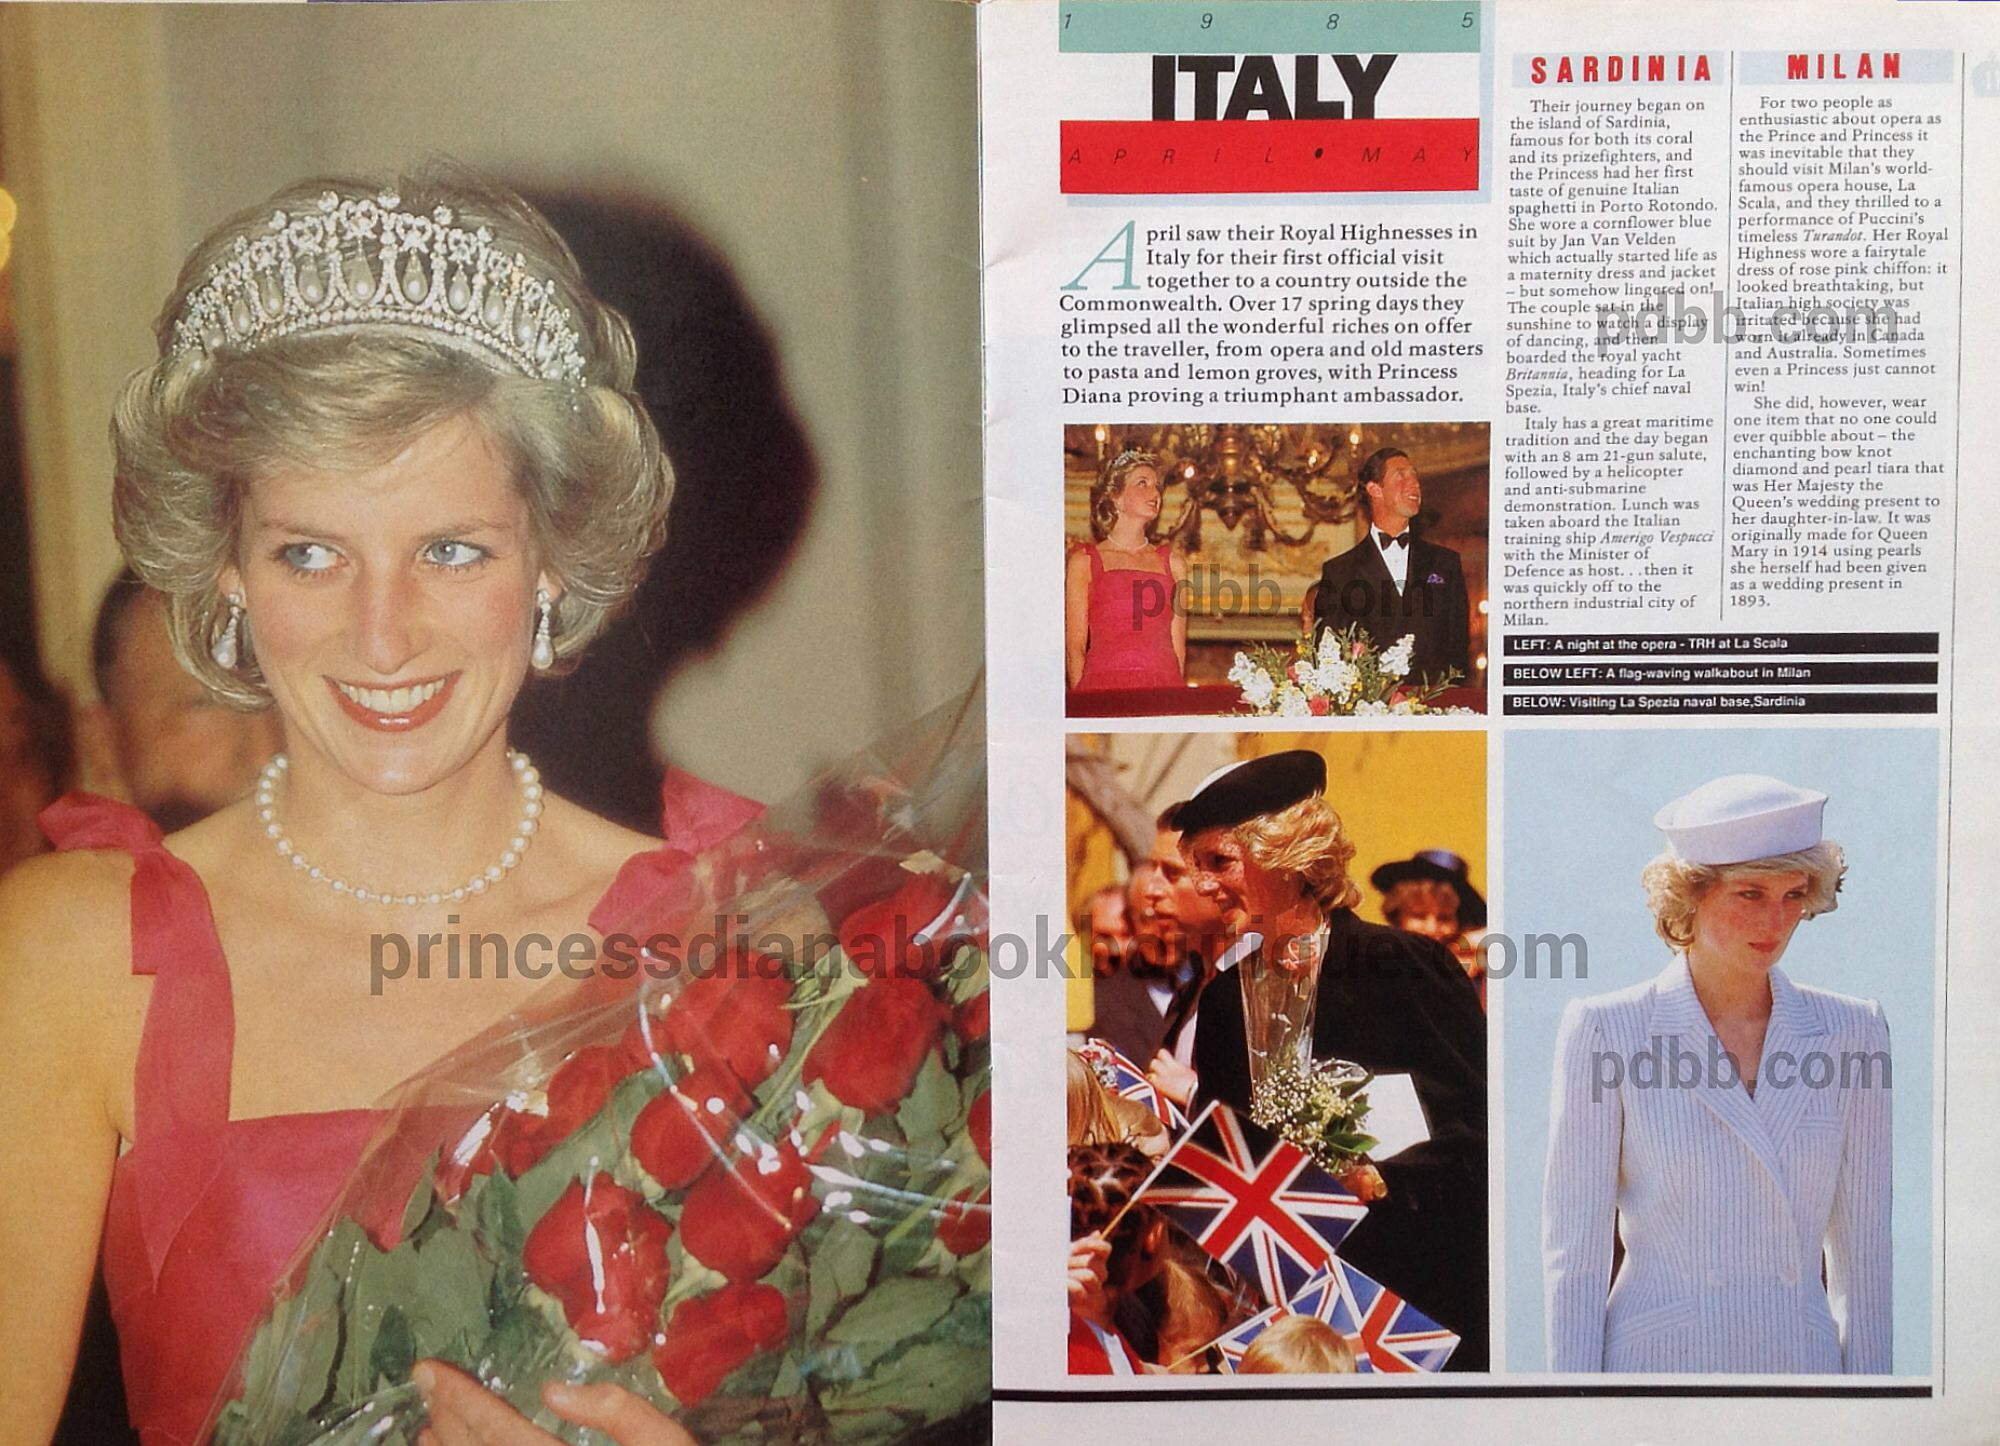 PORTO ROTONDO, SARDINIA — Britain`s Prince Charles and Princess Diana,  beginning a 17-day tour of Italy, were welcomed by thousands of cheering,  flag-waving ... 586ad69b9d